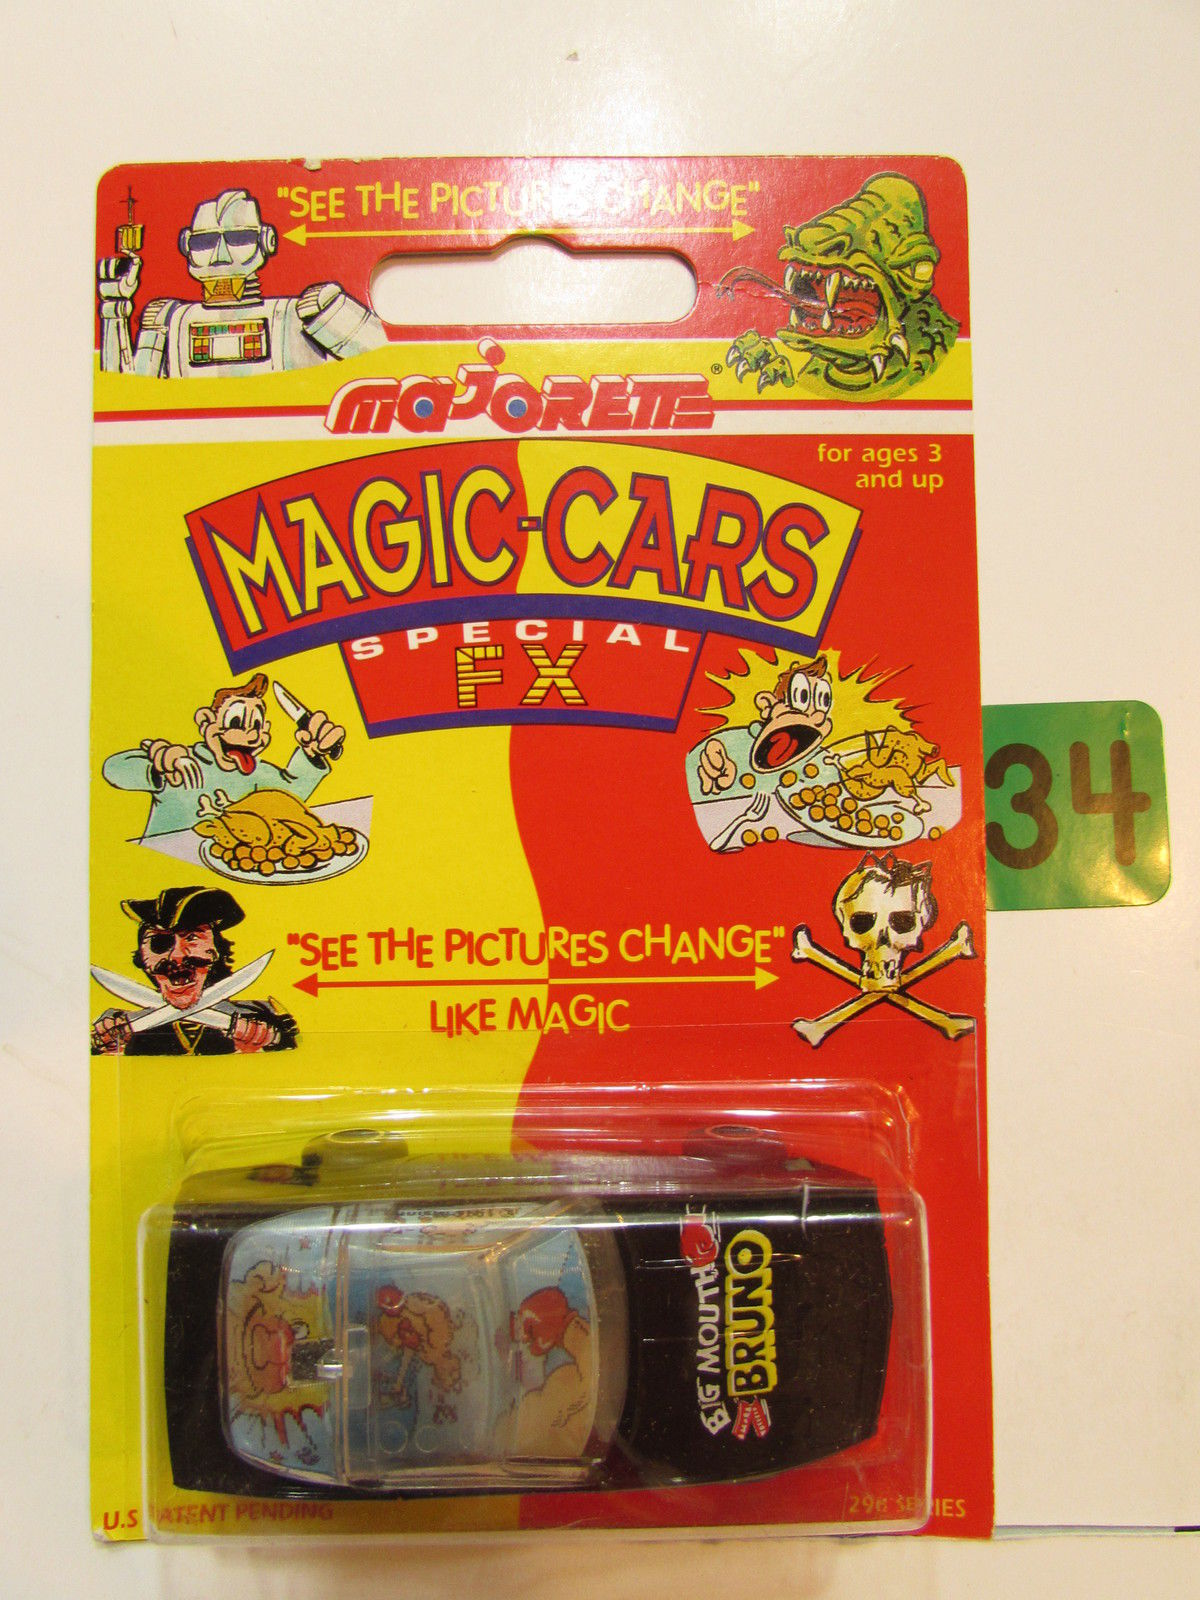 MAJORETTE MAGIC CARS SPECIAL FX BIG MOUTH BRUNO - CORVETTEMAJORETTE MAGIC CARS SPECIAL FX BIG MOUTH BRUNO - CORVETTE E+